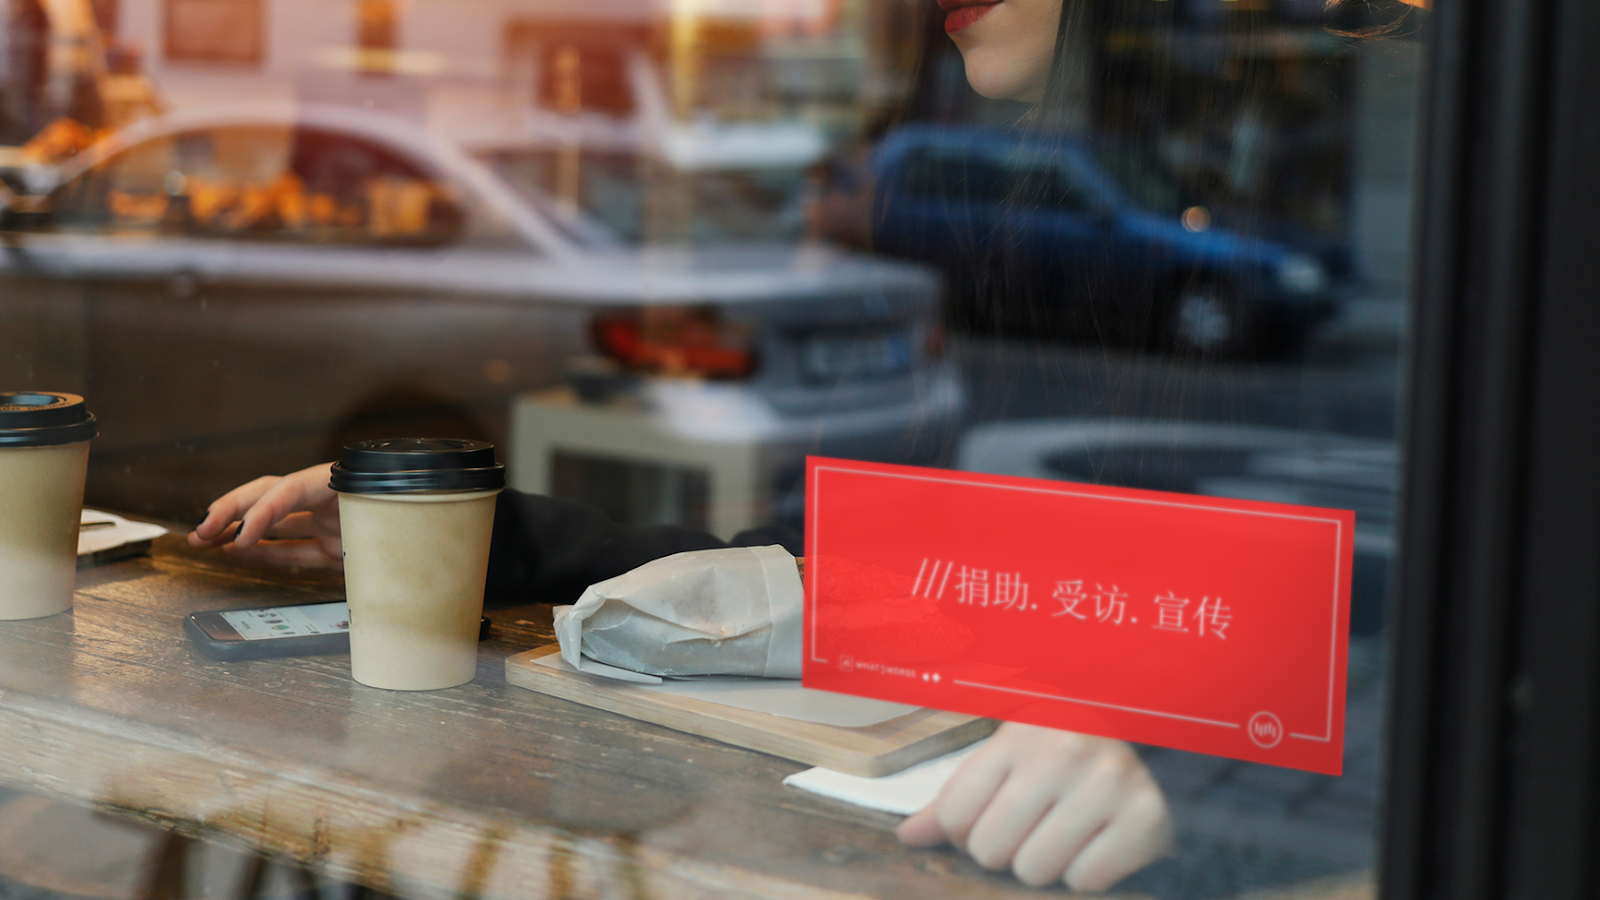 A cafe window with a red sign displaying a what3words address in Chinese